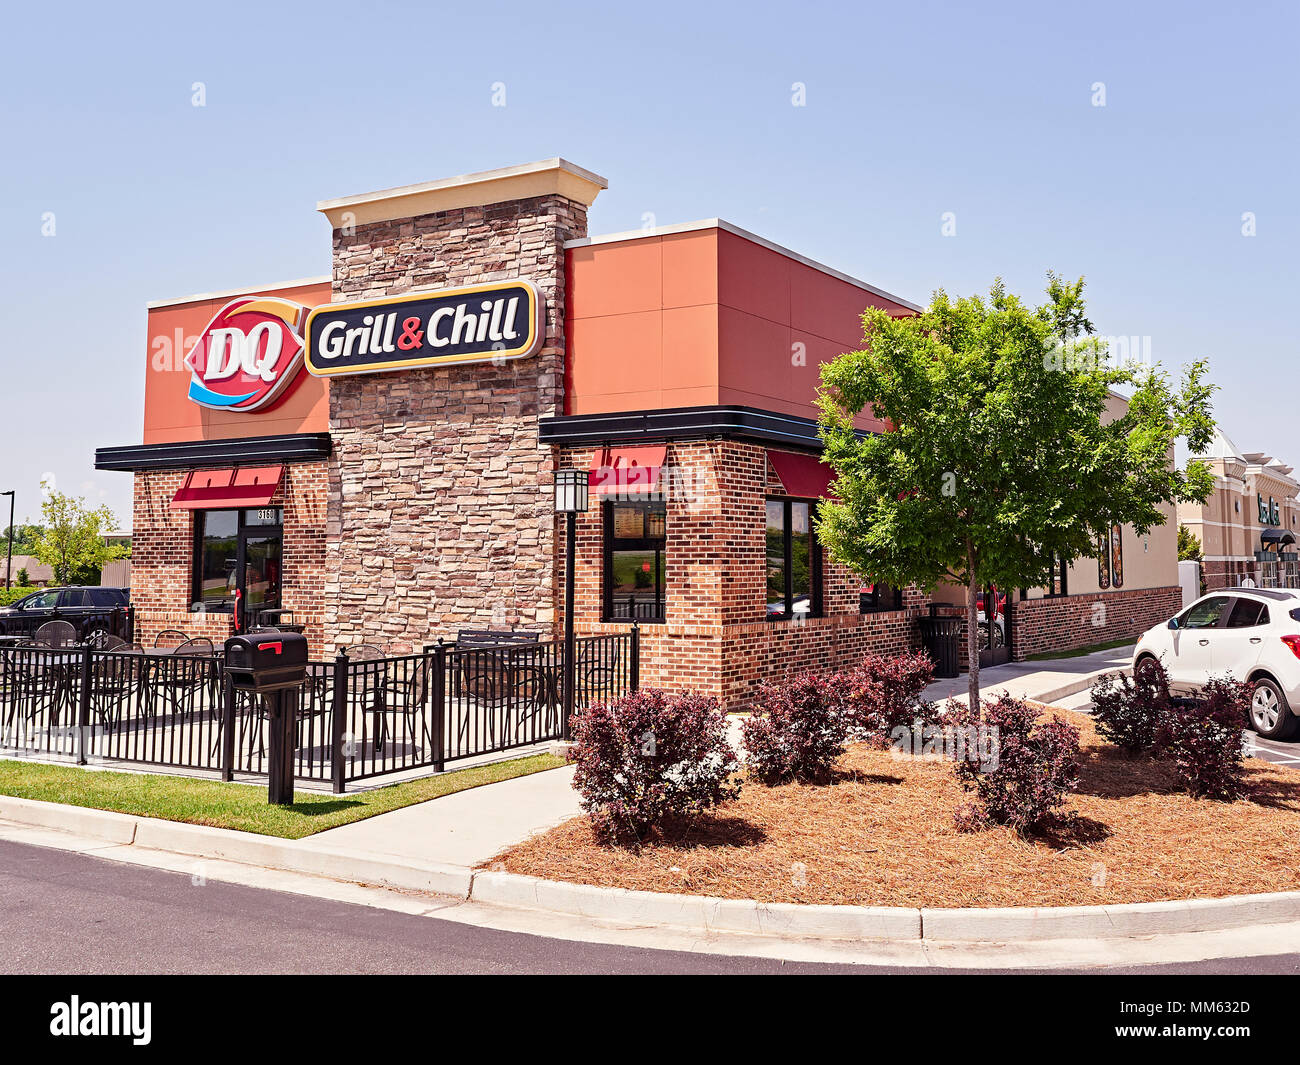 Exterior entrance to a Dairy Queen, DQ, Grill and Chill fast food restaurant in Montgomery, Alabama USA. - Stock Image